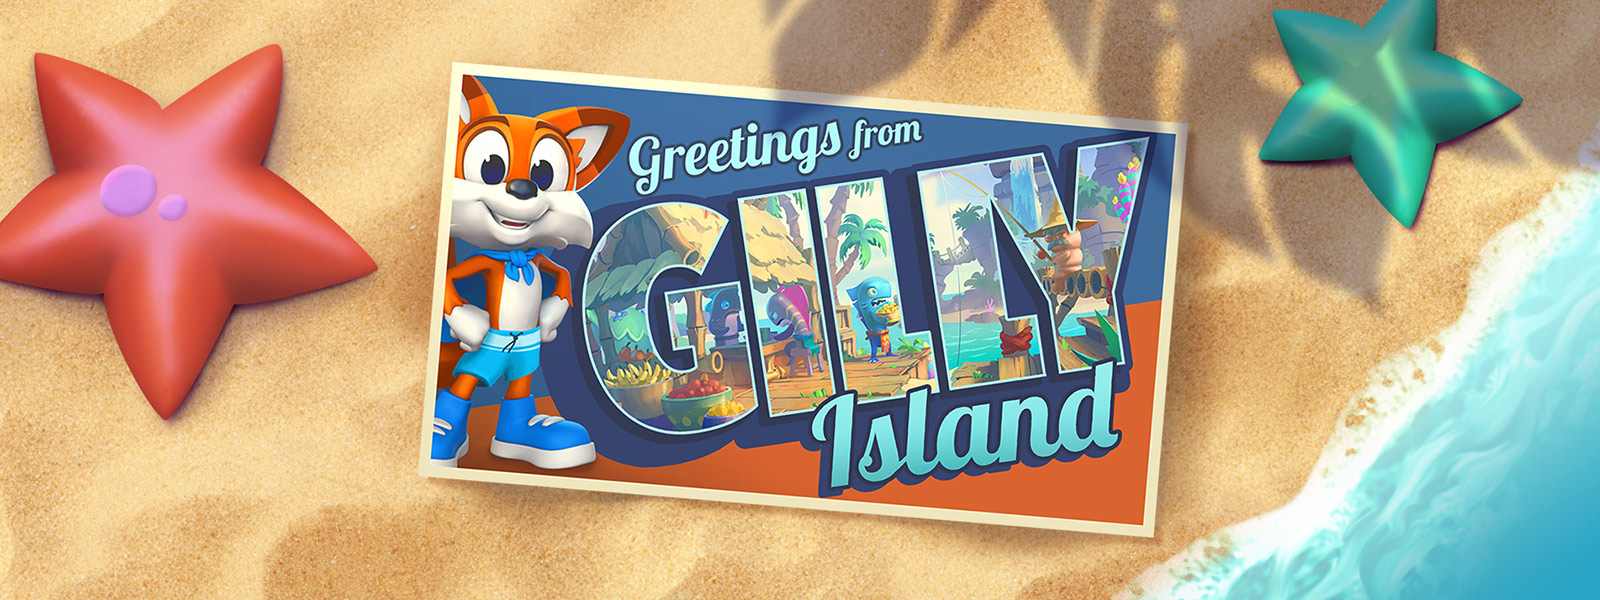 Lucky on a postcard with the words: Greetings from Gilly Island